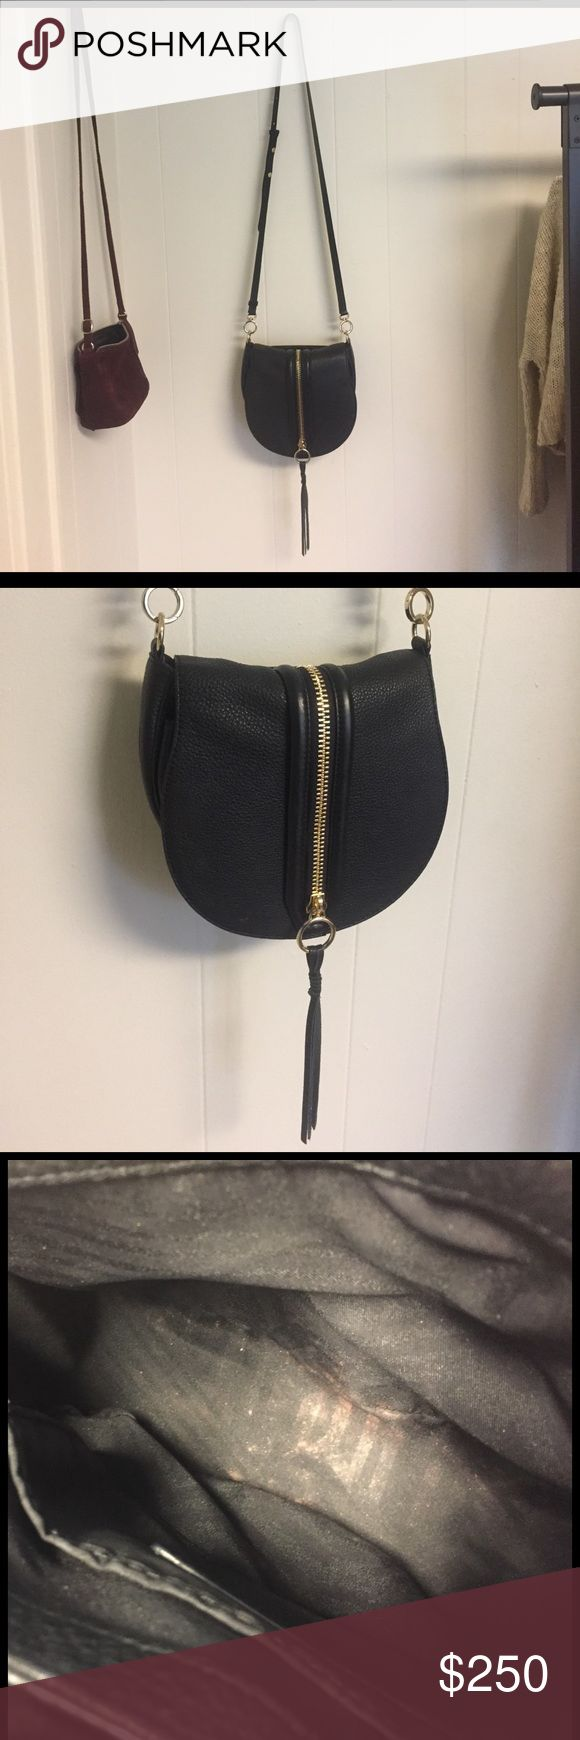 Rebecca minkoff cross body bag Gently used cross body. Has a few stains of make up on the inside but can be removed. The tassels were cut off to be shortened since they looked too long on me. Still beautiful bag. Bought it at Bloomingdales. Still have the tags. Rebecca Minkoff Bags Crossbody Bags